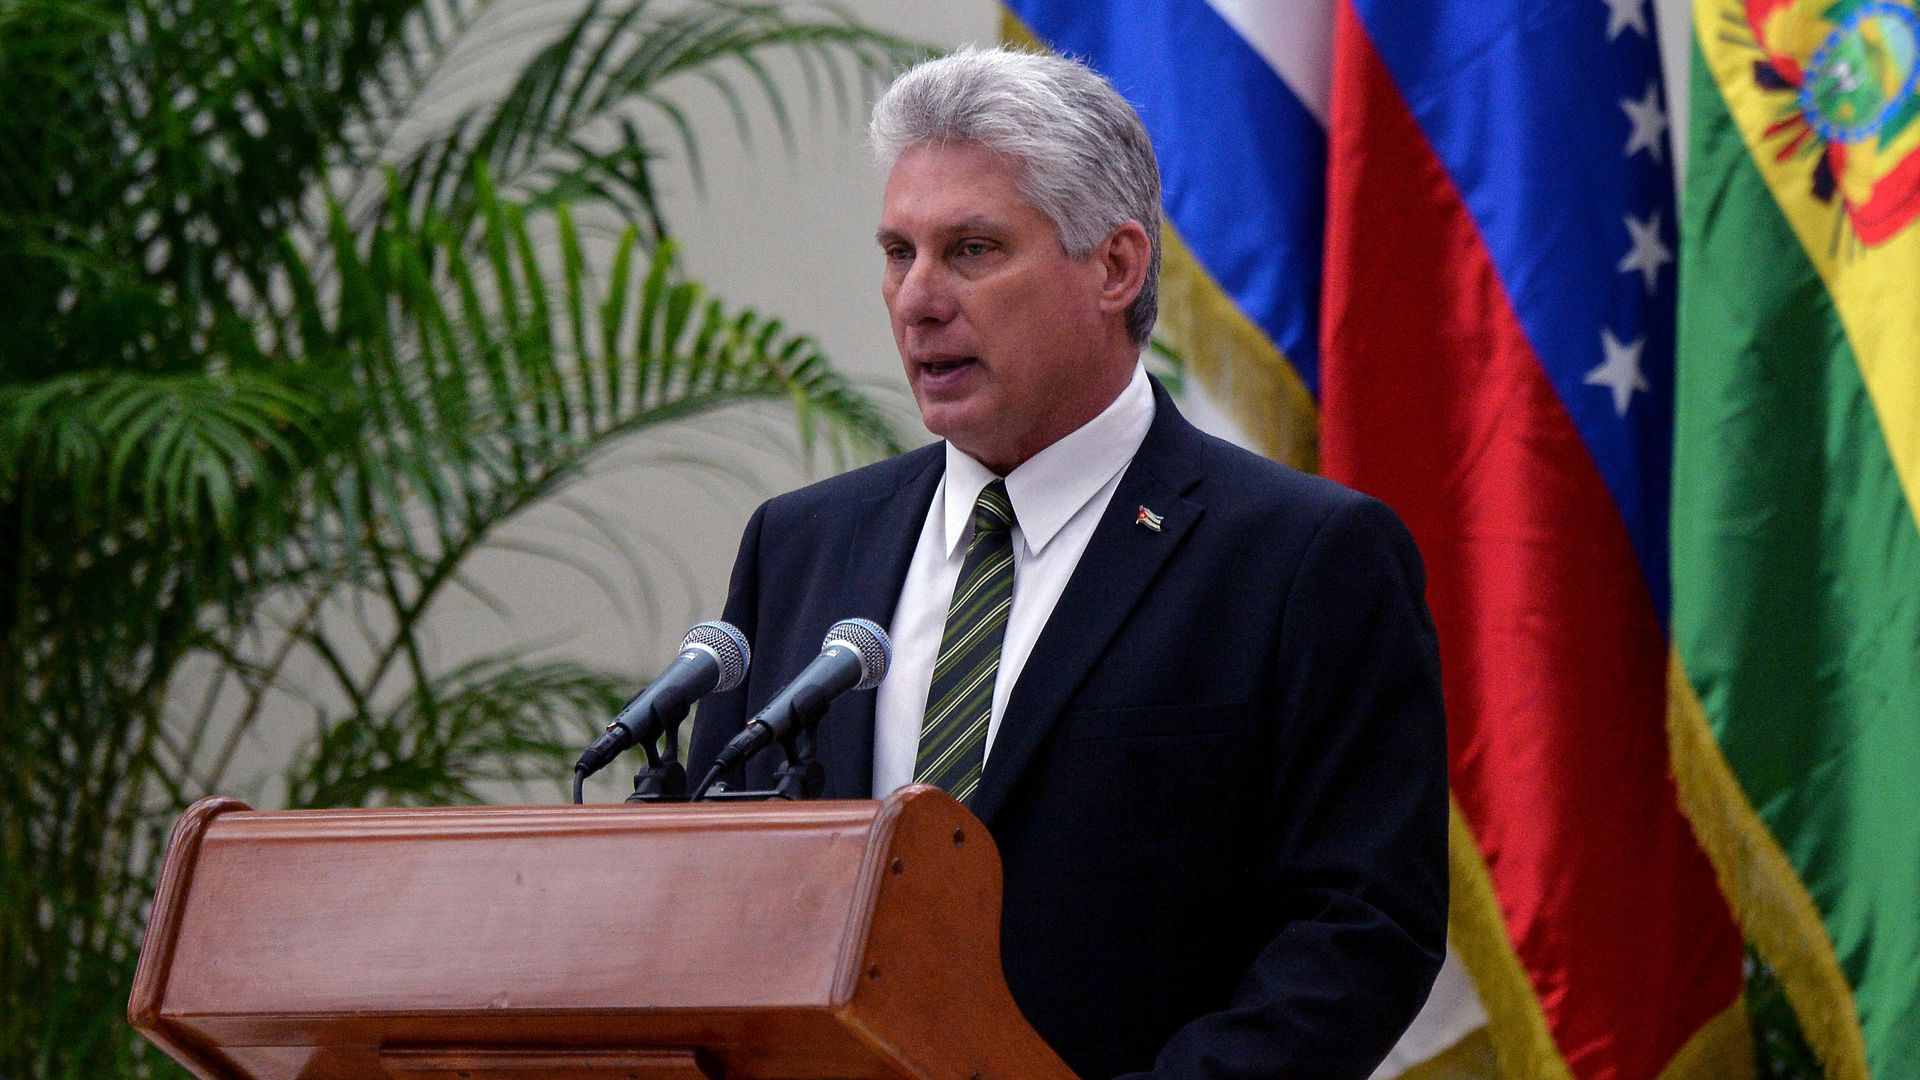 Miguel Diaz-Canel speaking at a lectern in front of Cuban flag